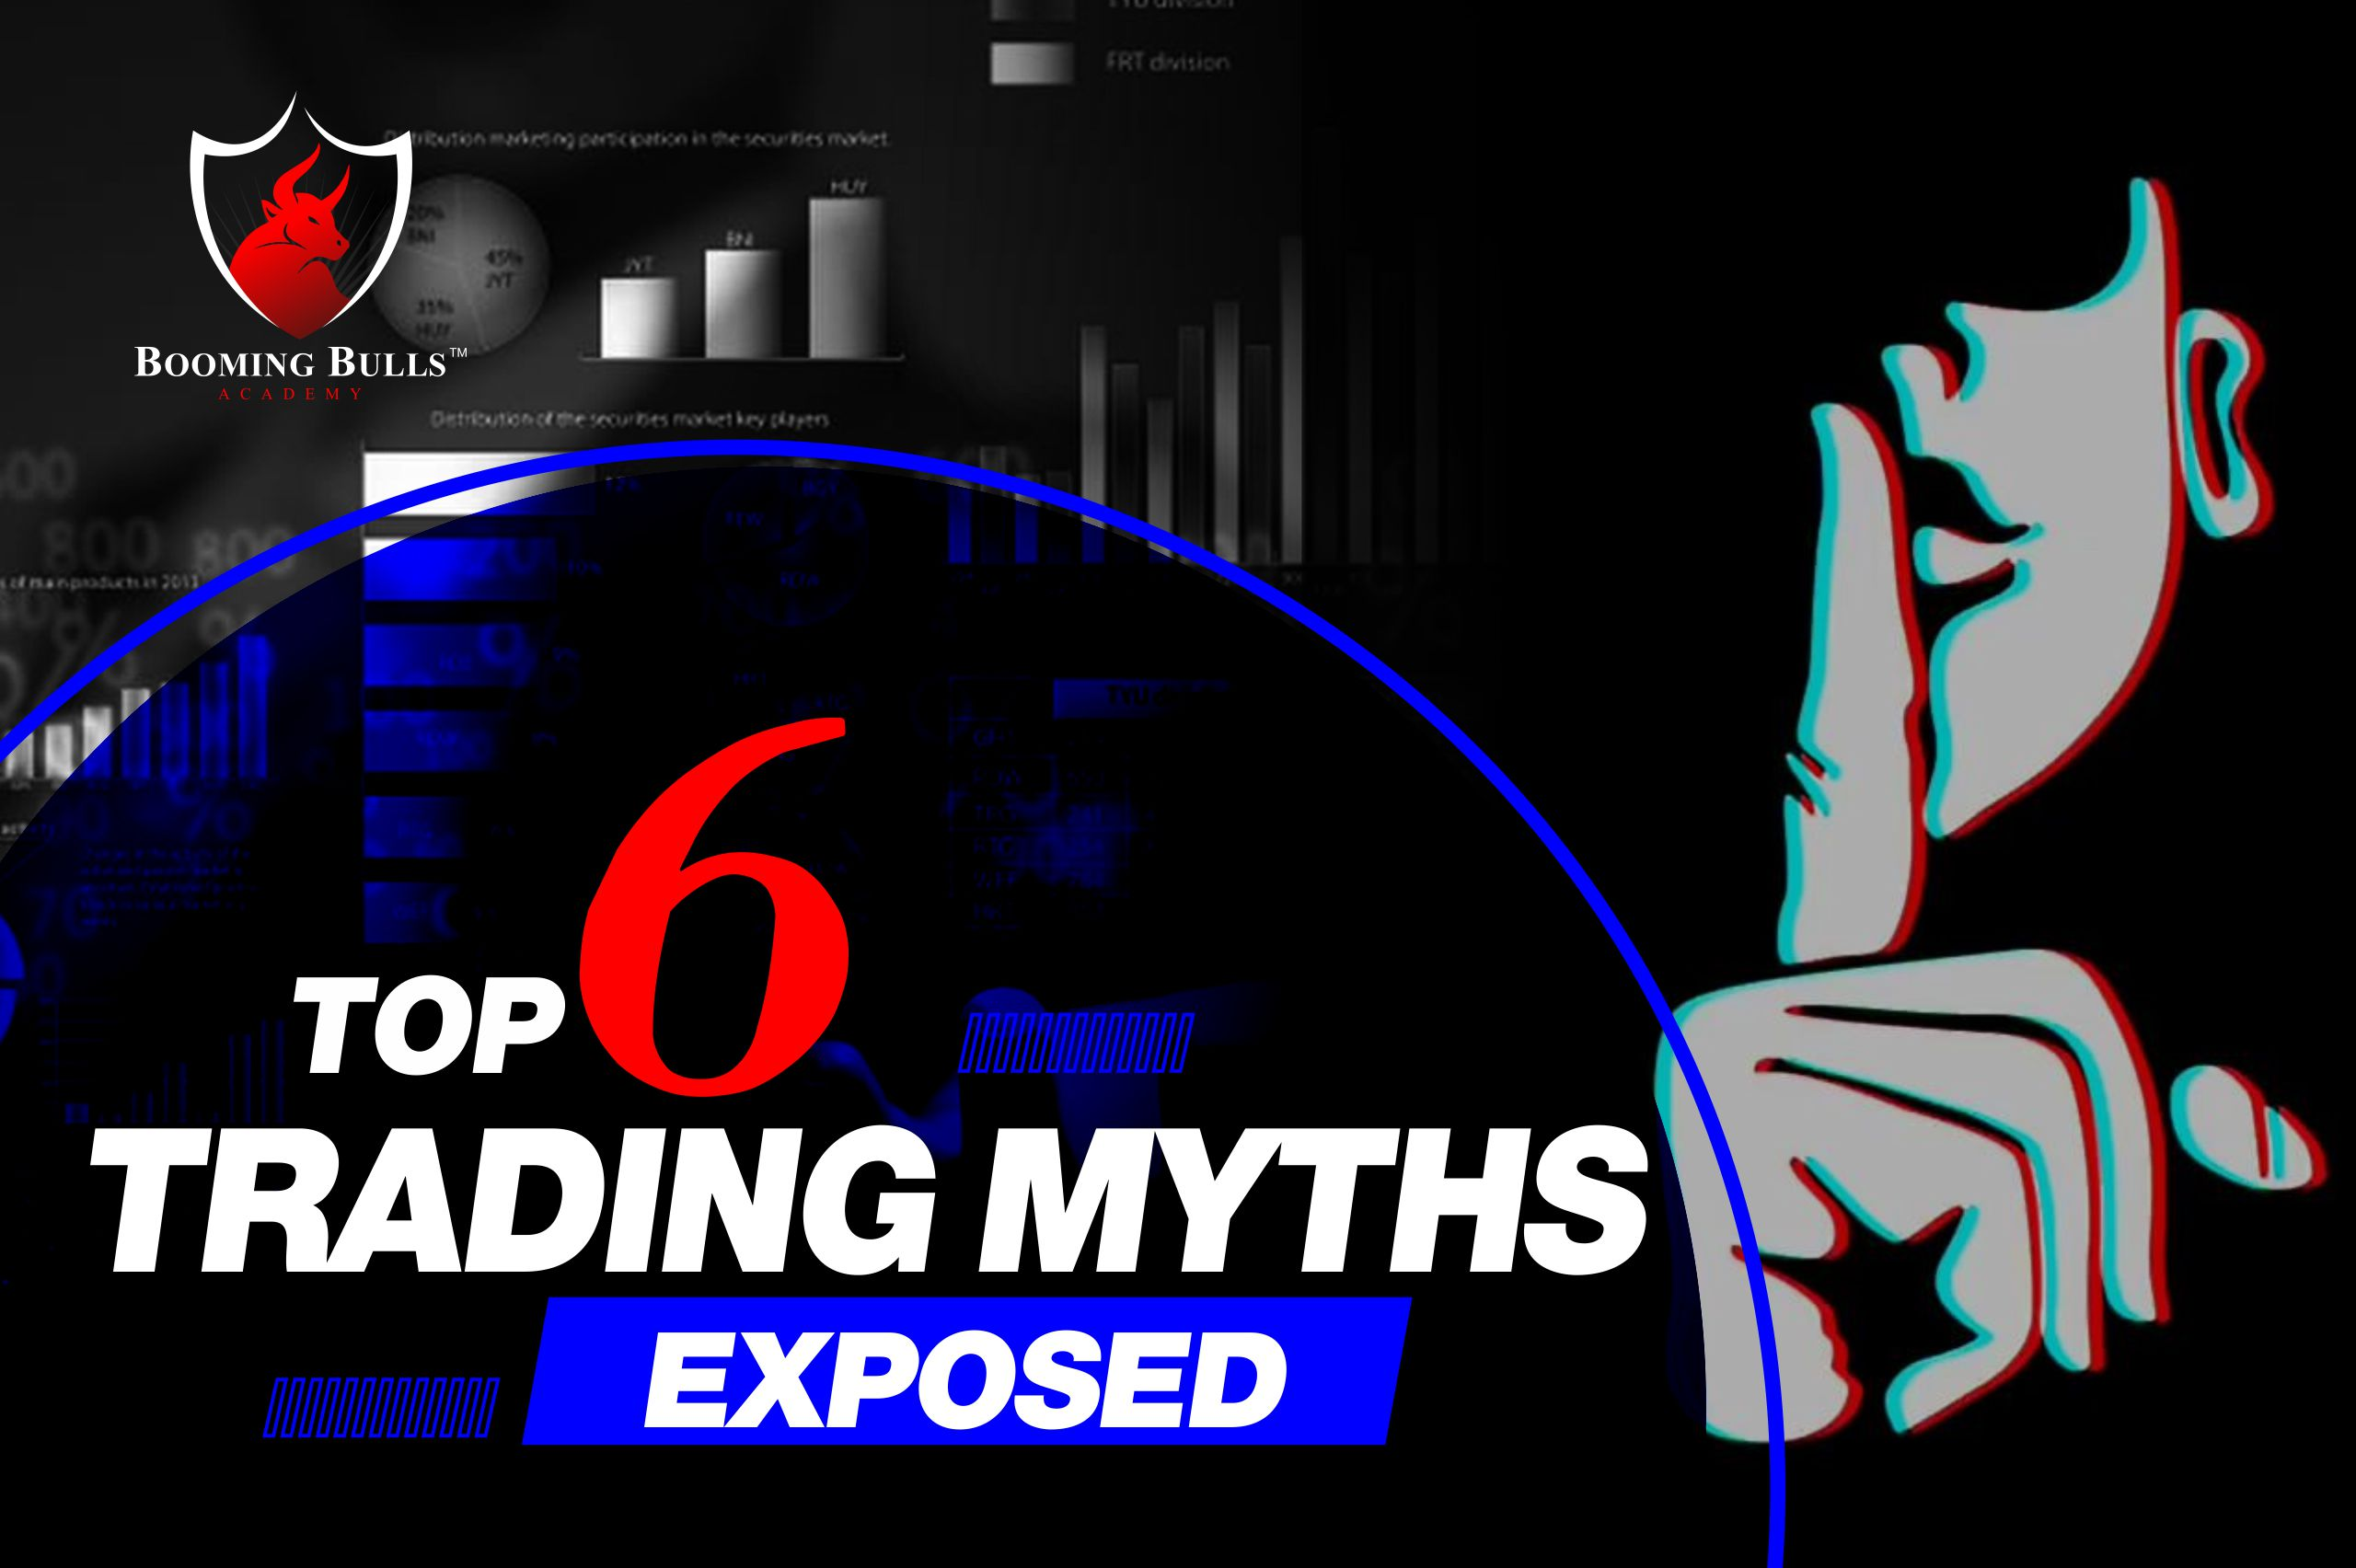 Top 6 Trading Myths Exposed